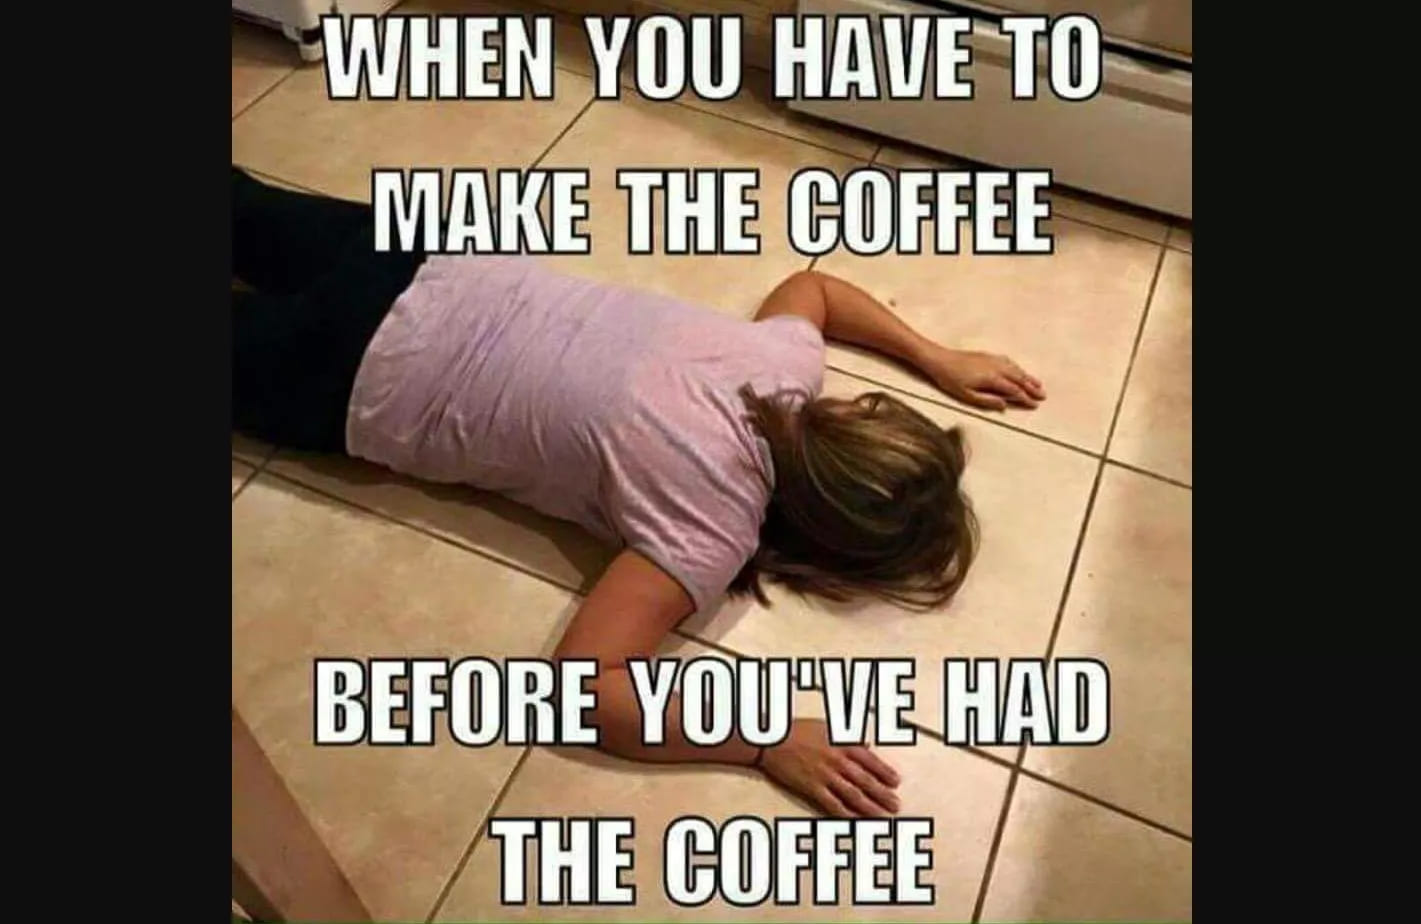 before your coffee meme, funny before having coffee meme, before having your coffee meme